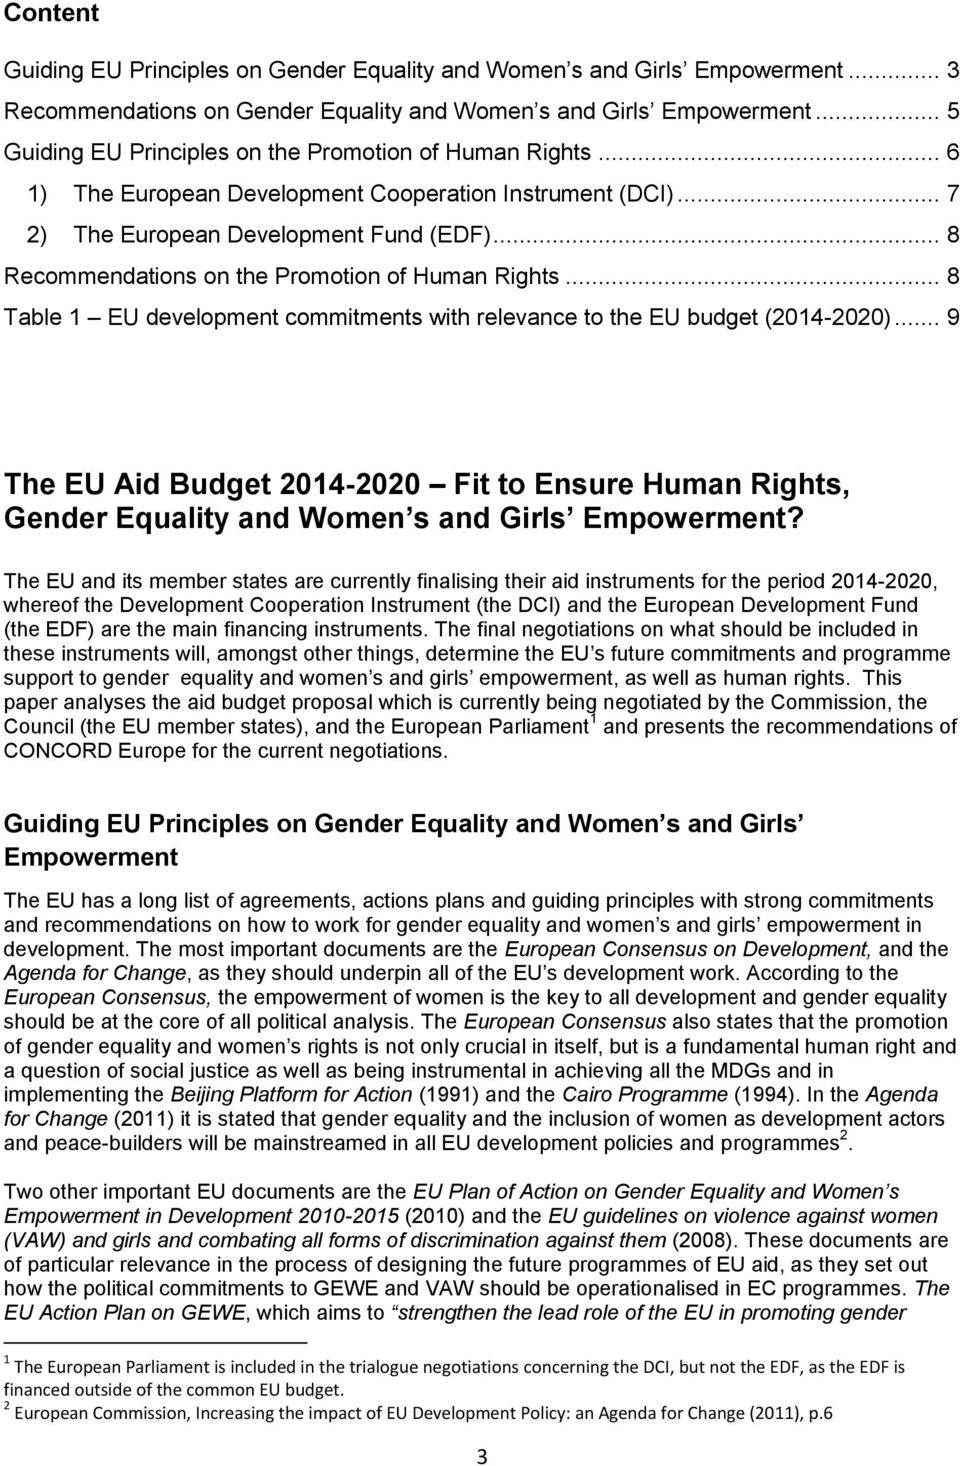 .. 8 Recommendations on the Promotion of Human Rights... 8 Table 1 EU development commitments with relevance to the EU budget (2014-2020).